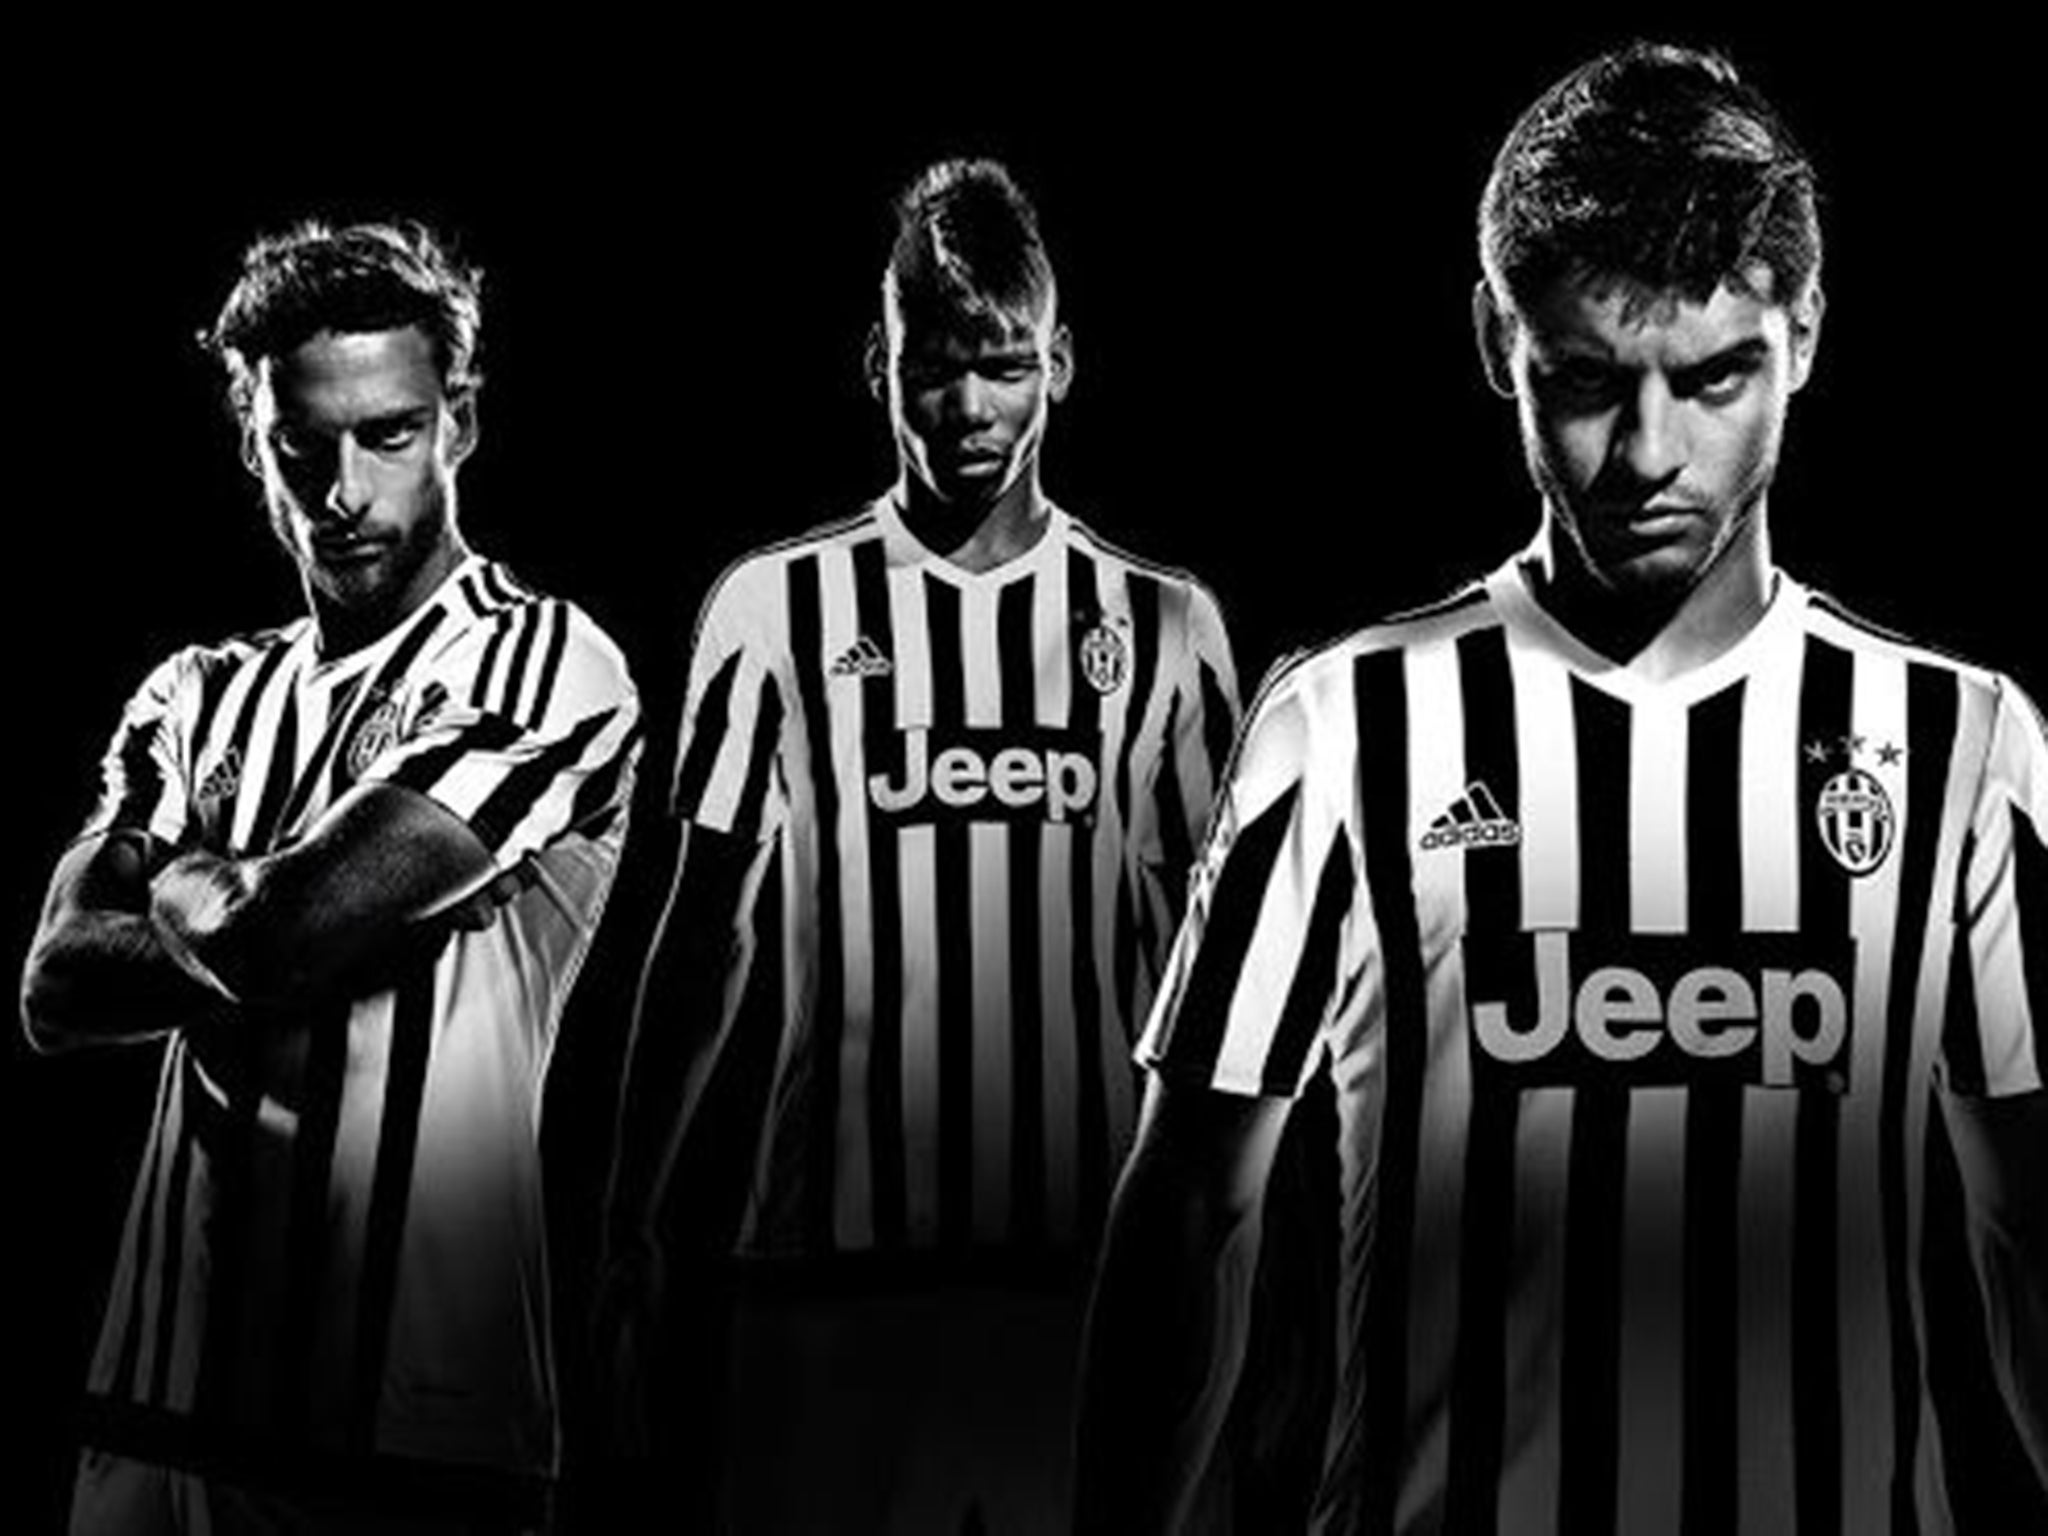 Google chrome themes juventus - Paul Pogba To Barcelona Juventus And Barca Agree Deal For Manchester United And Man City Target Who Will Not Move Until 2016 The Independent